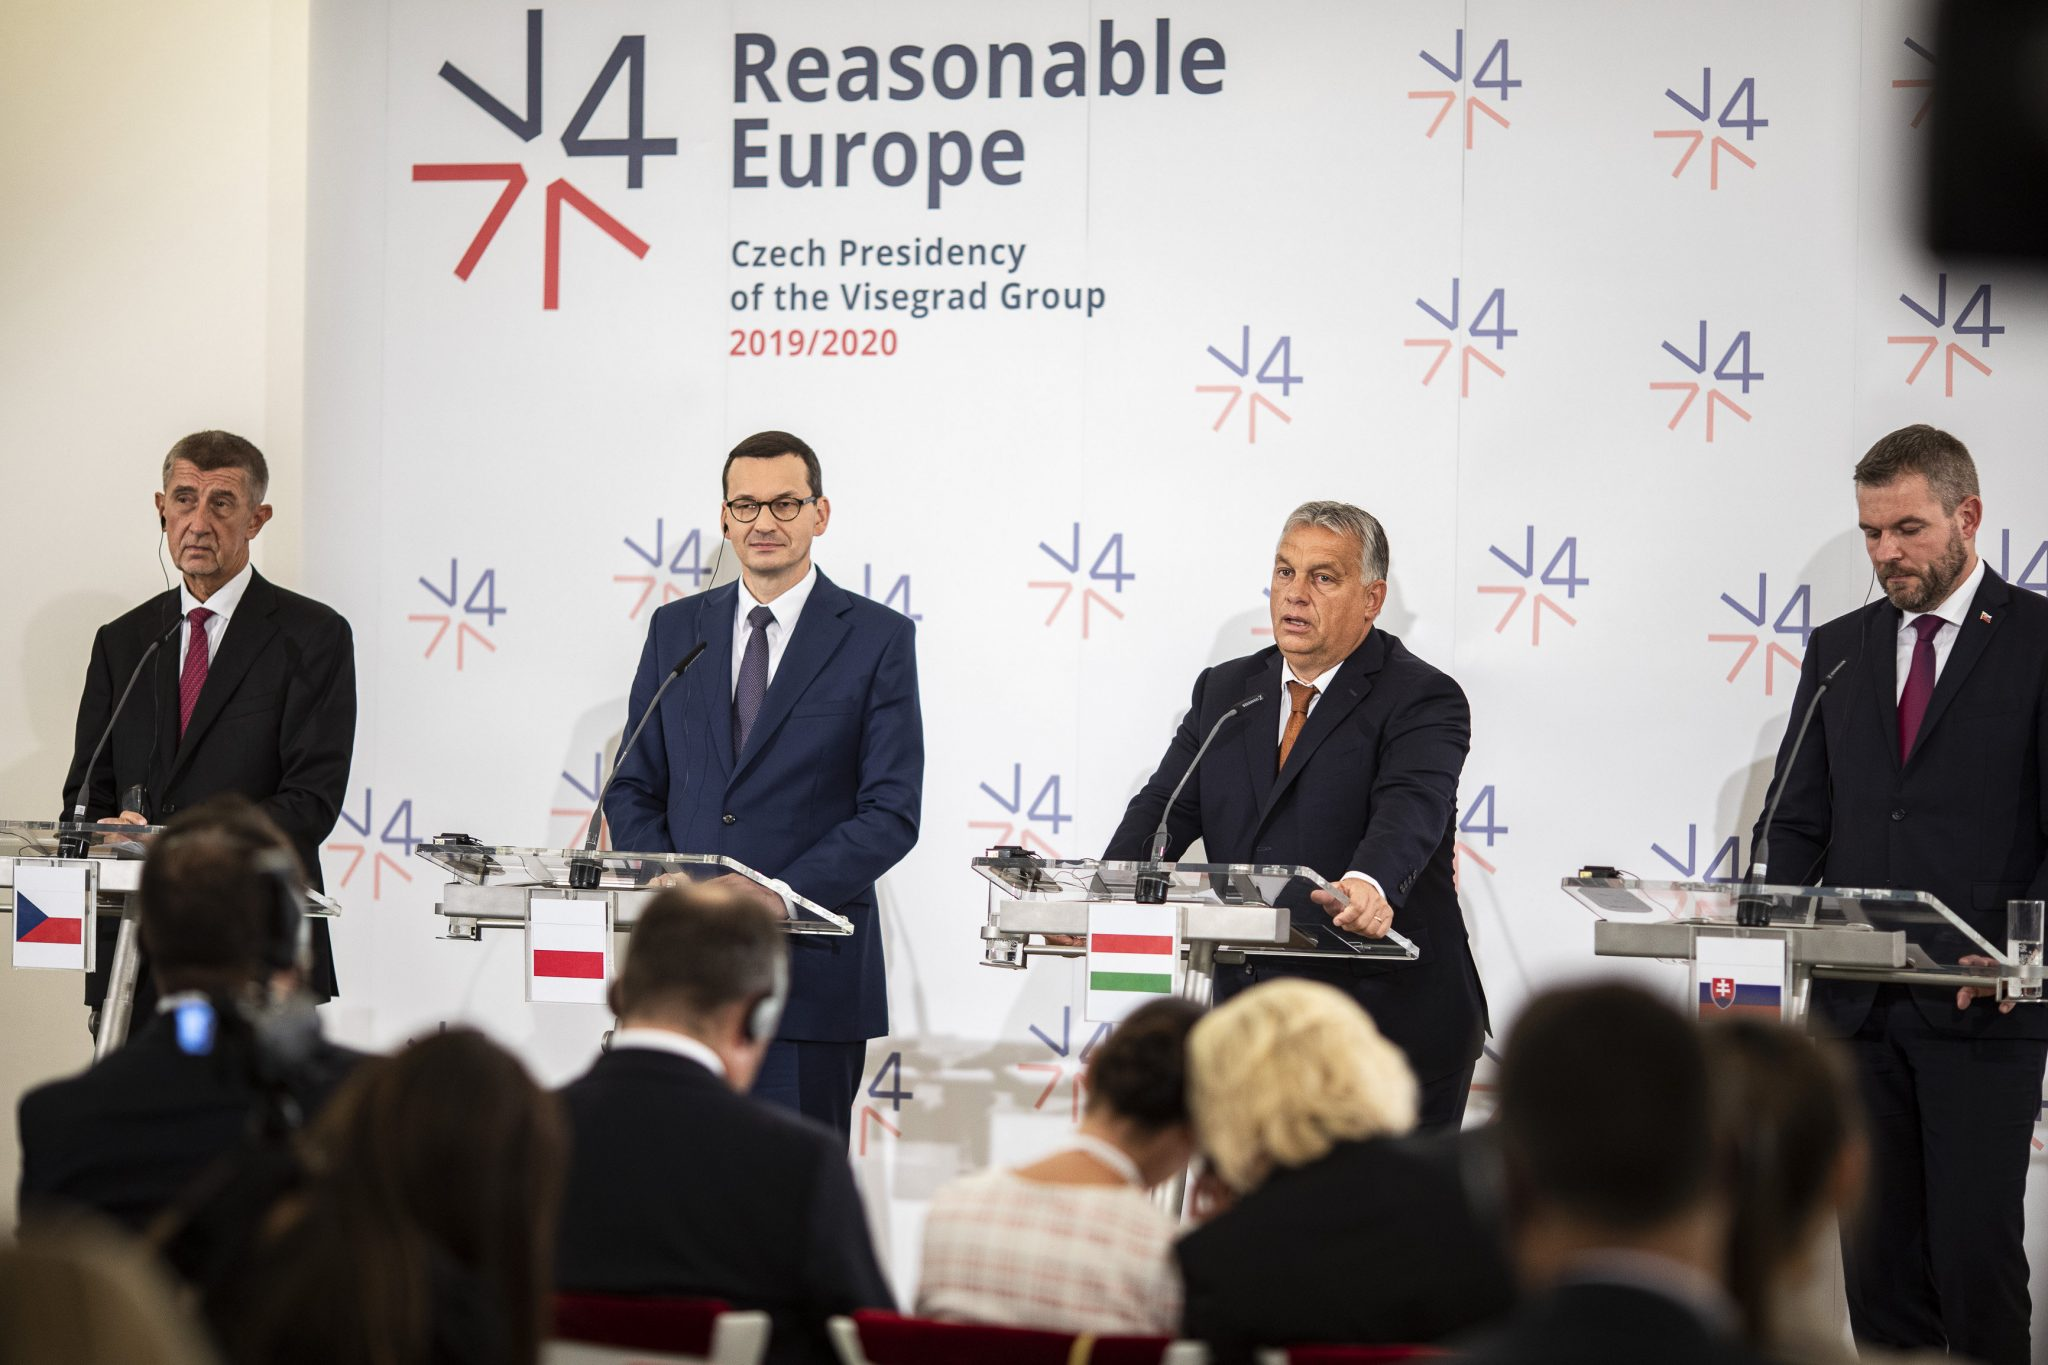 Orbán: V4's Heft in Europe Has Grown post's picture